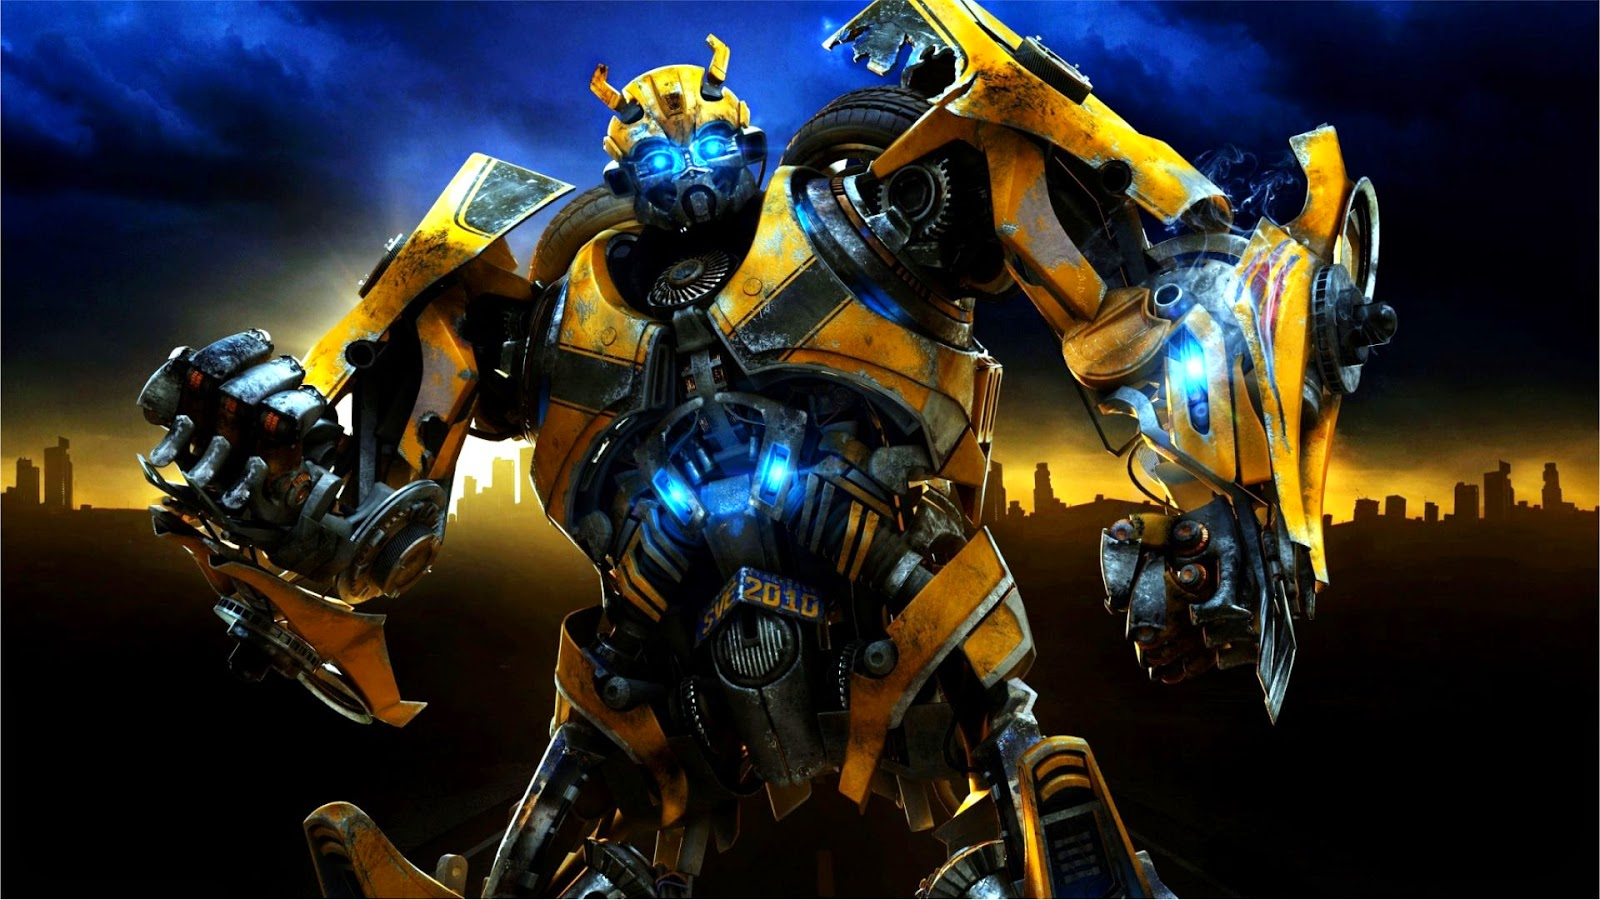 Wallpaper Transformers HD